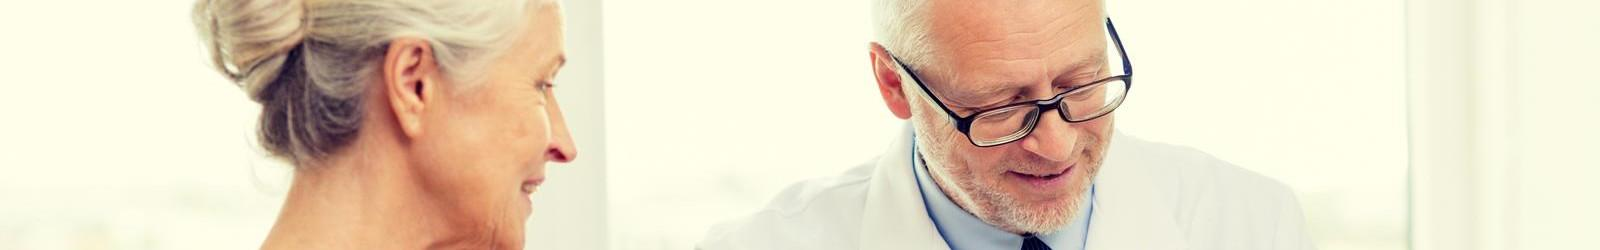 Medication Management Therapy: What Is Medication Management?